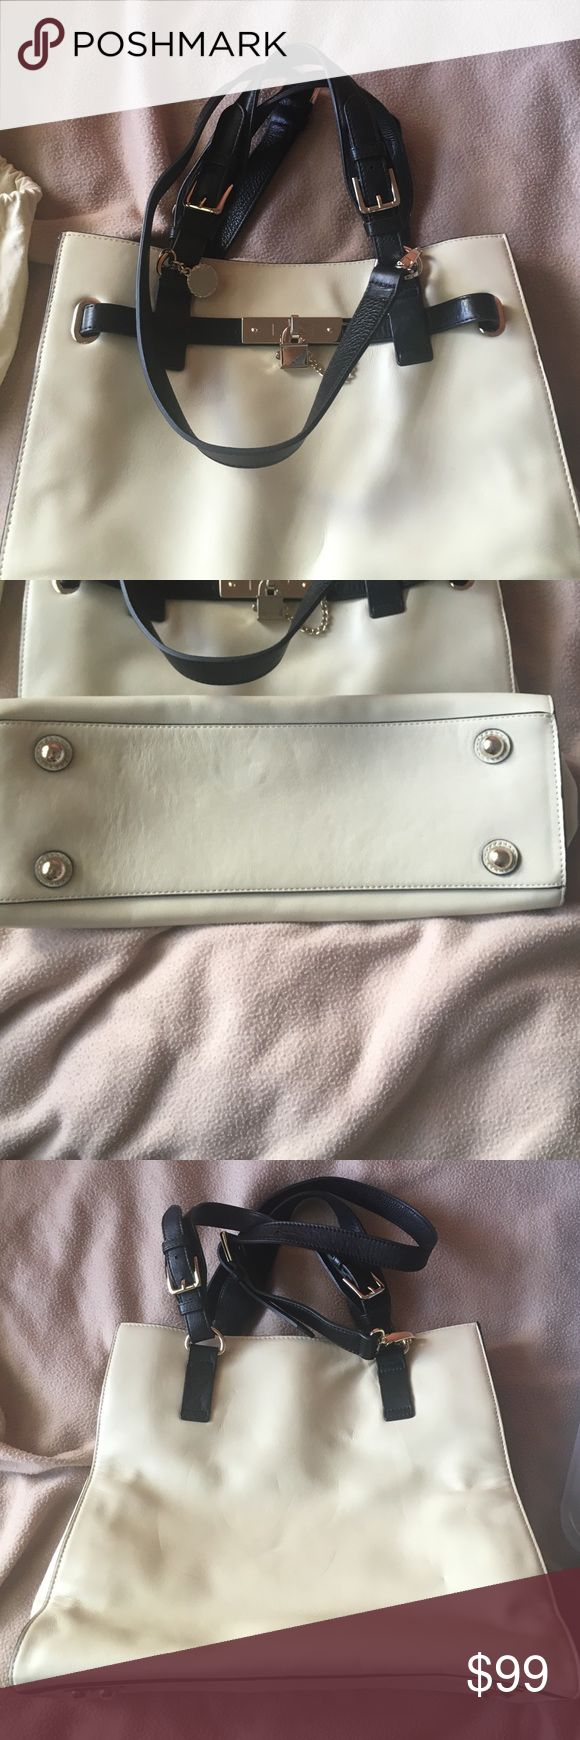 Pictures of 💯 Reiss Bleecker Structured Leather Extra pictures of Reiss 👜 that you may purchase in another listing 😉 Reiss Bags Totes